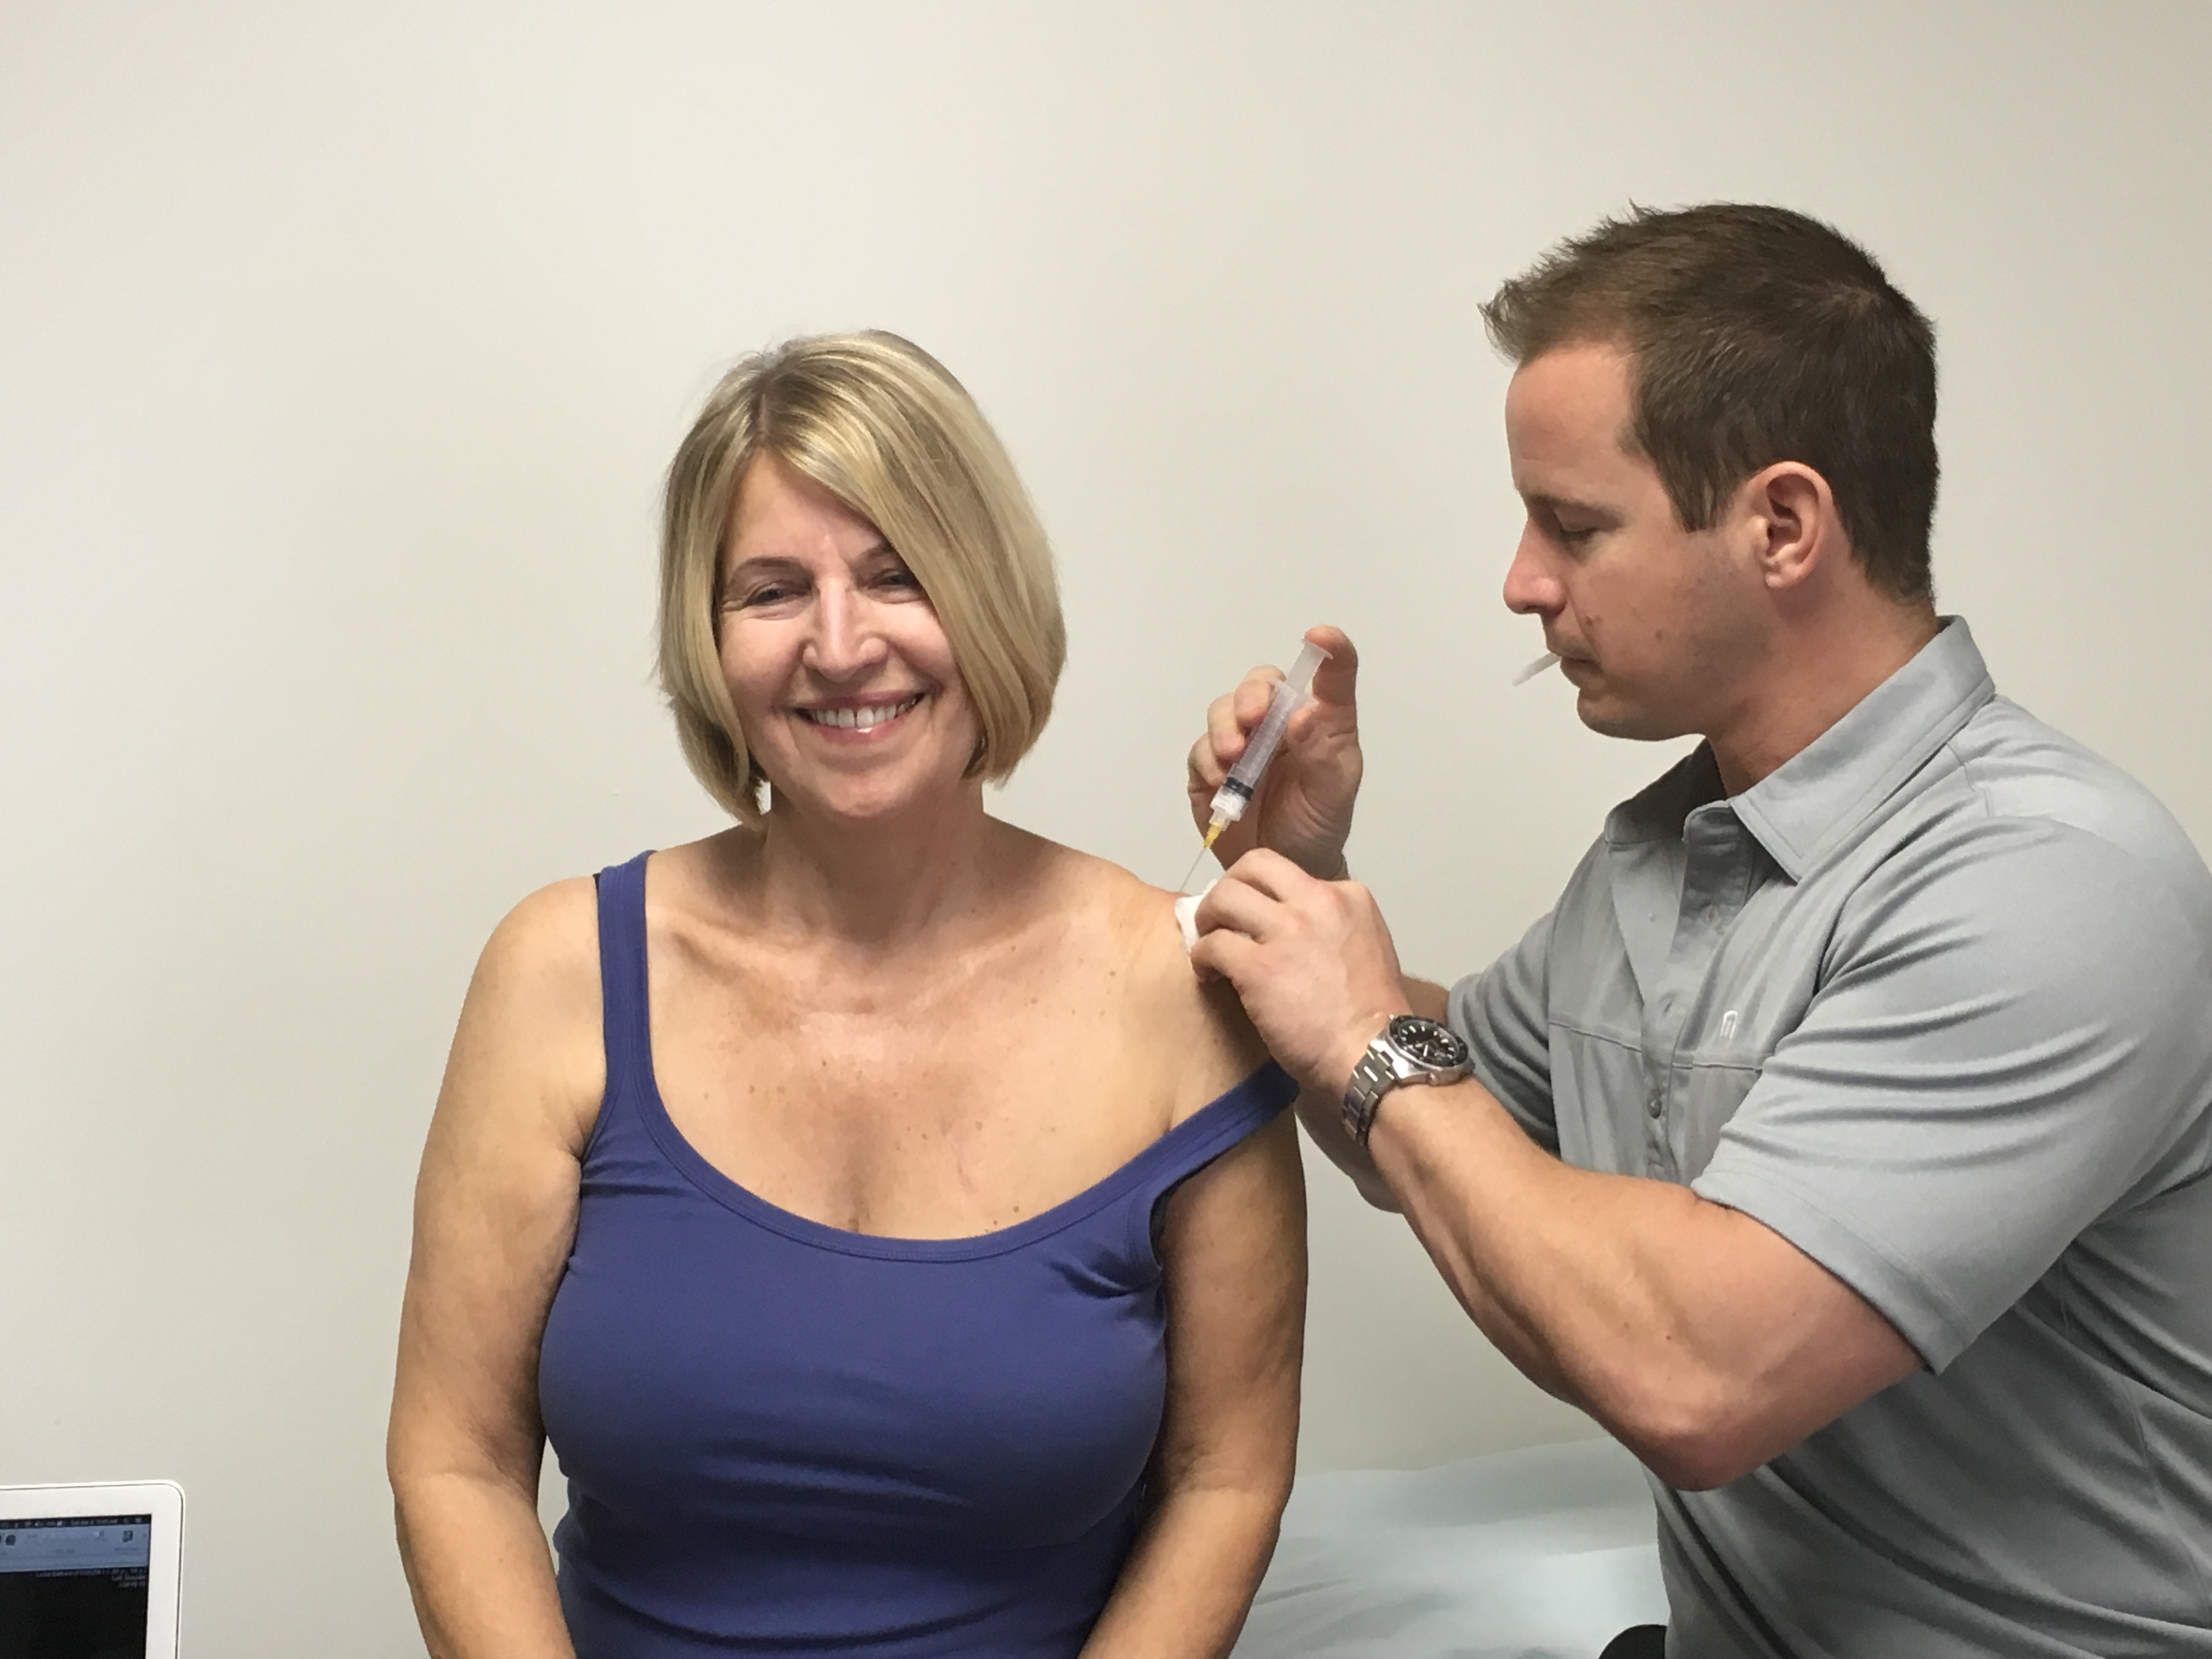 Dr. Hartshorn performs an injection